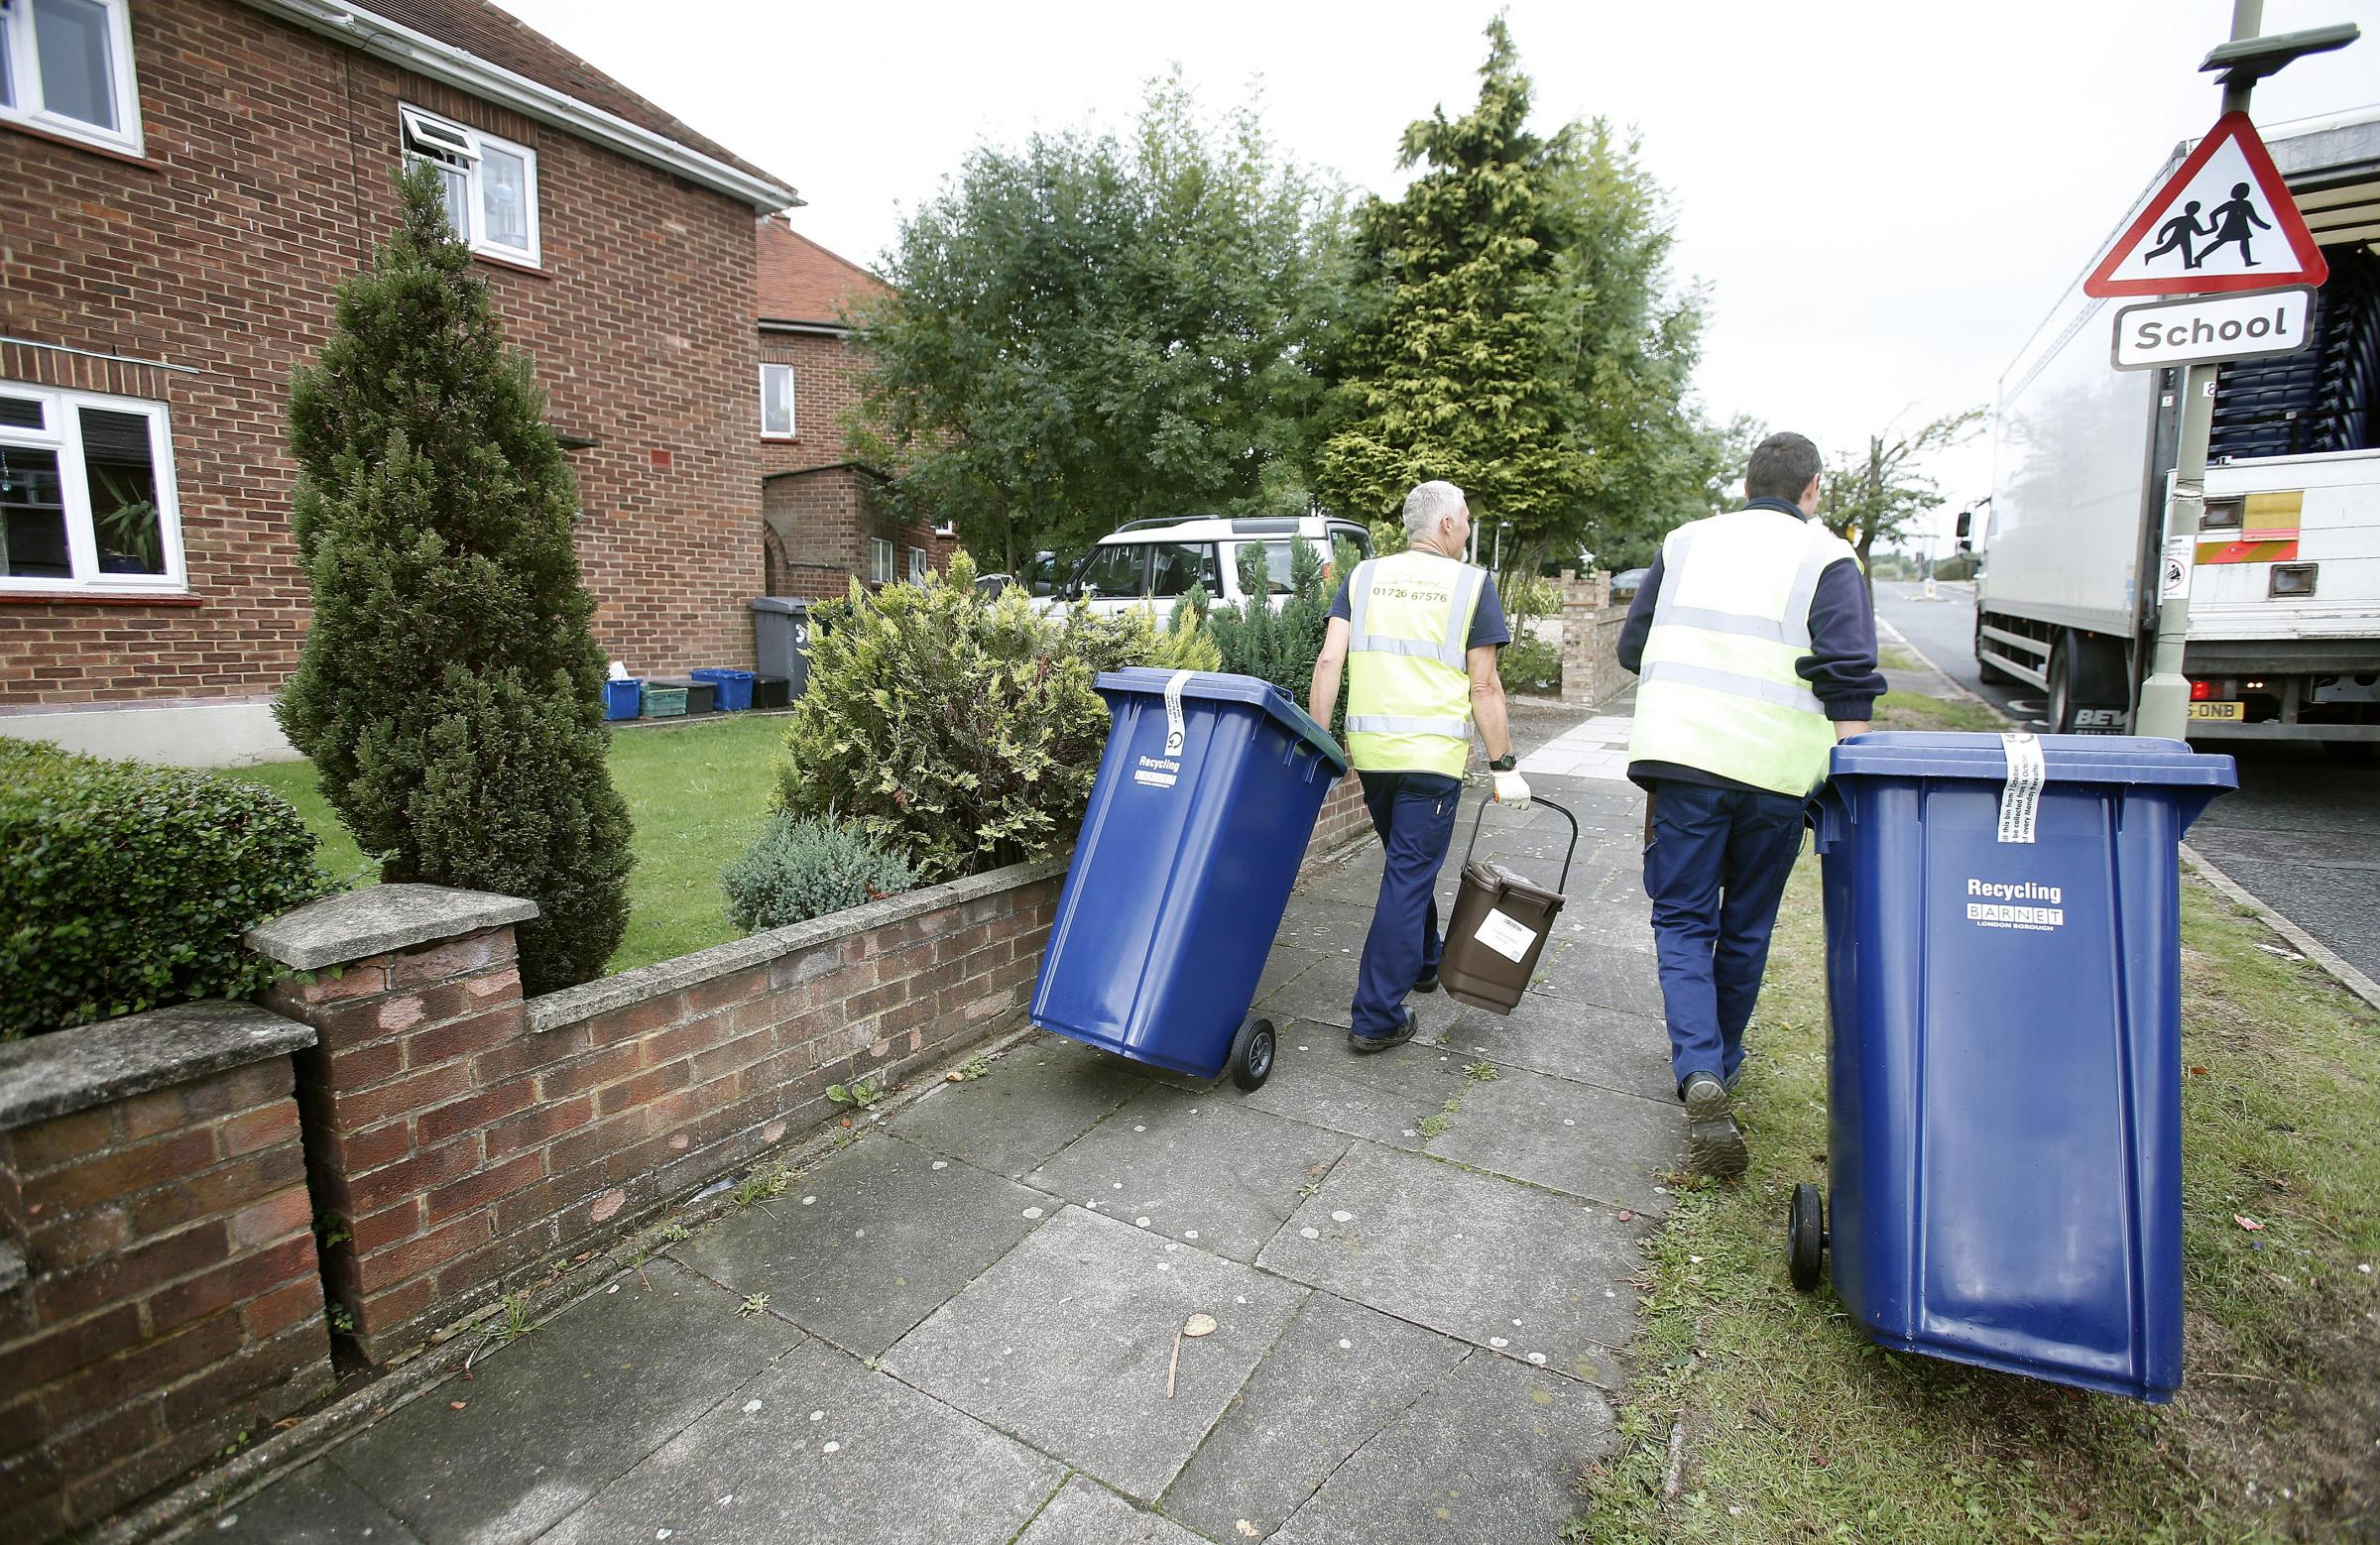 Figures show 81 per cent happy with new recyling service